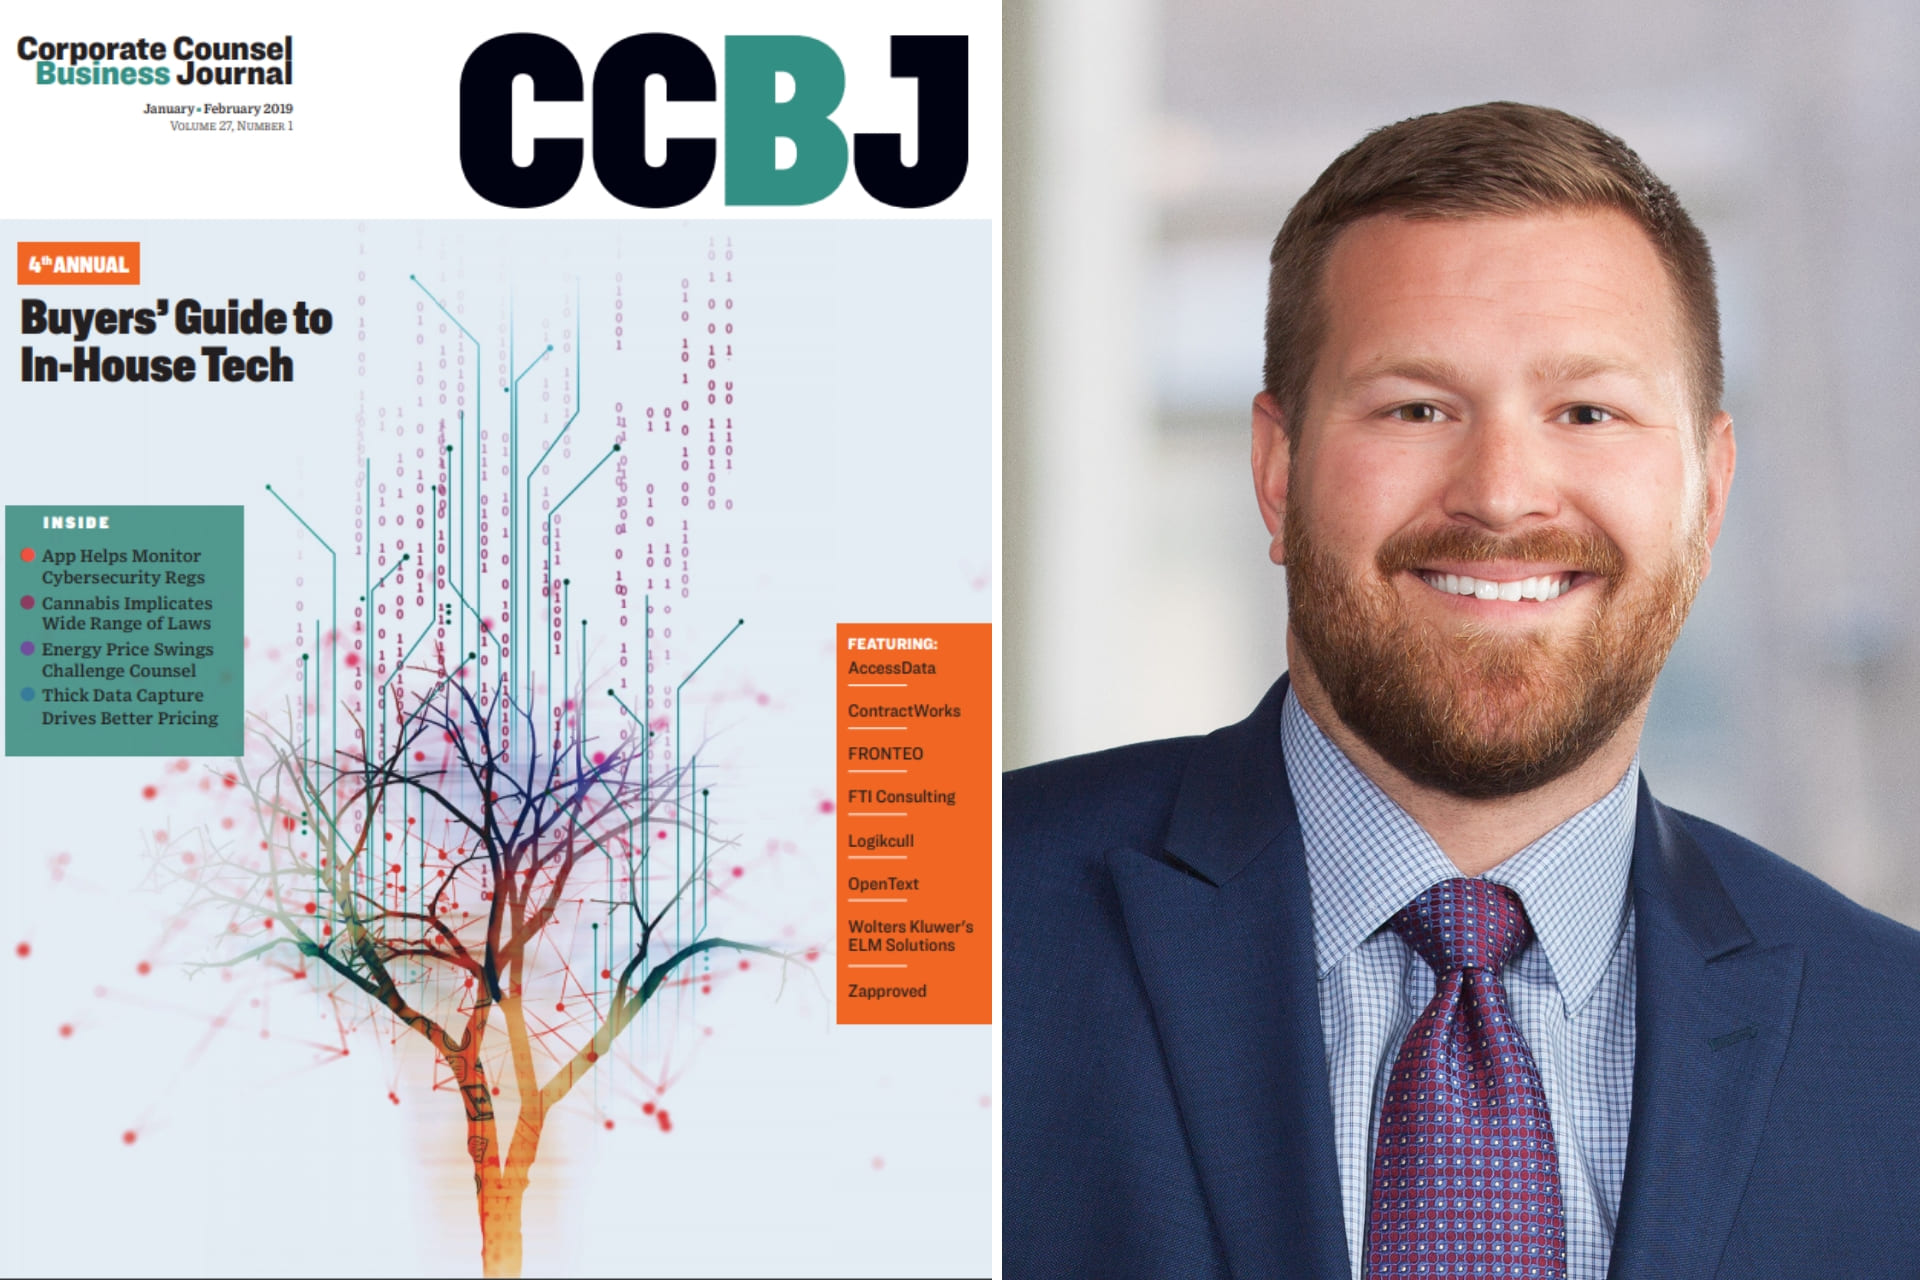 Jared Applegate, CCBJ